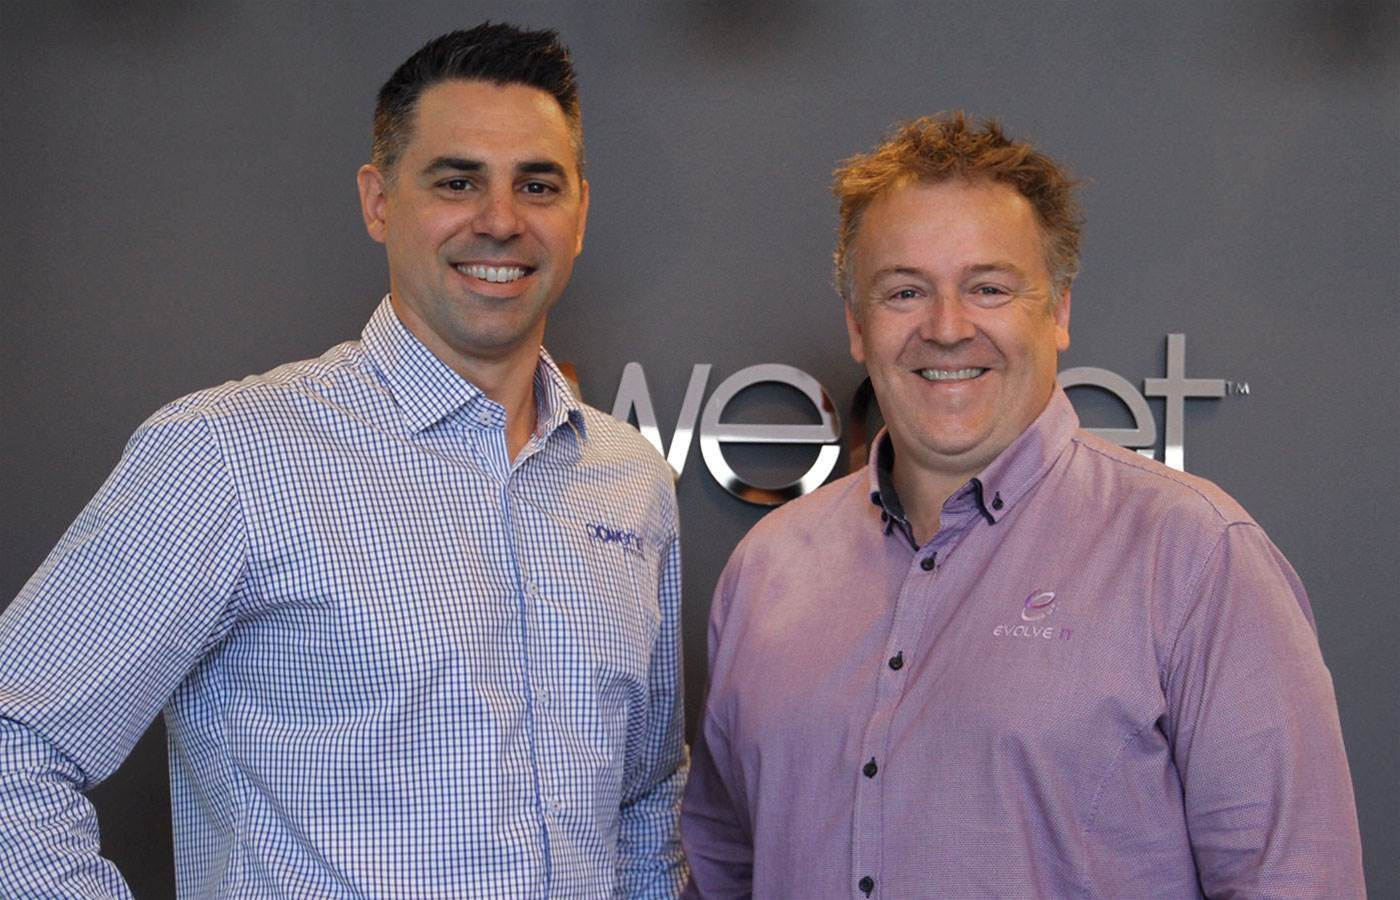 Powernet and Evolve IT aim high with merger